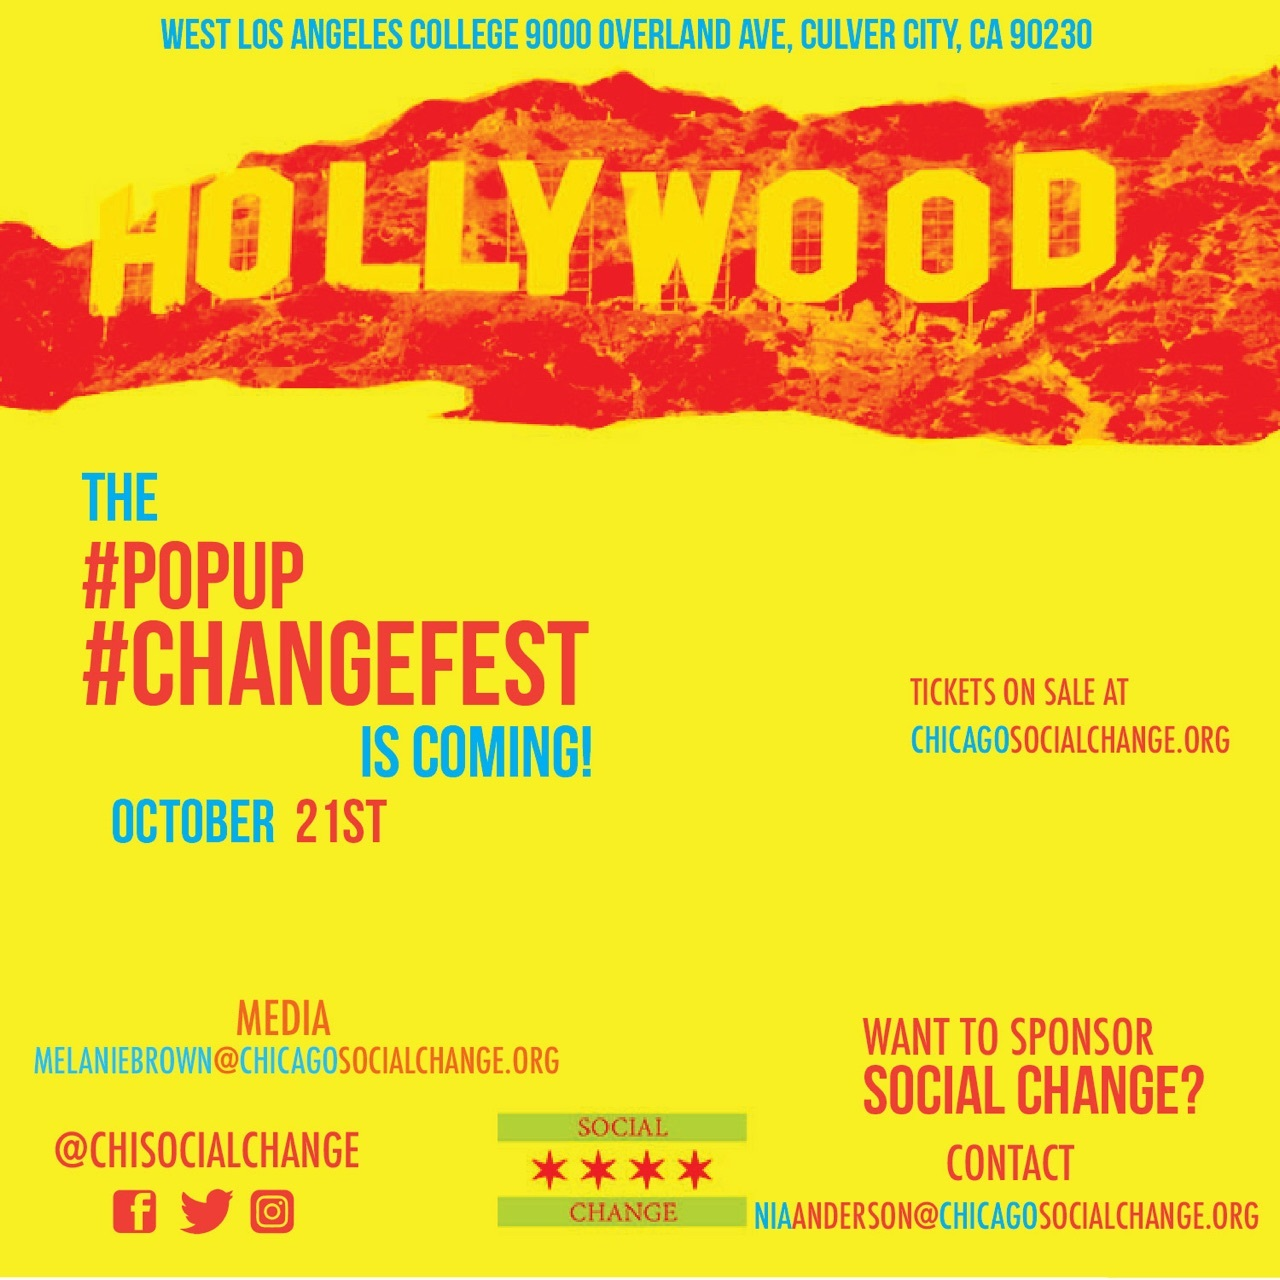 #PopUp #ChangeFest - Los Angeles